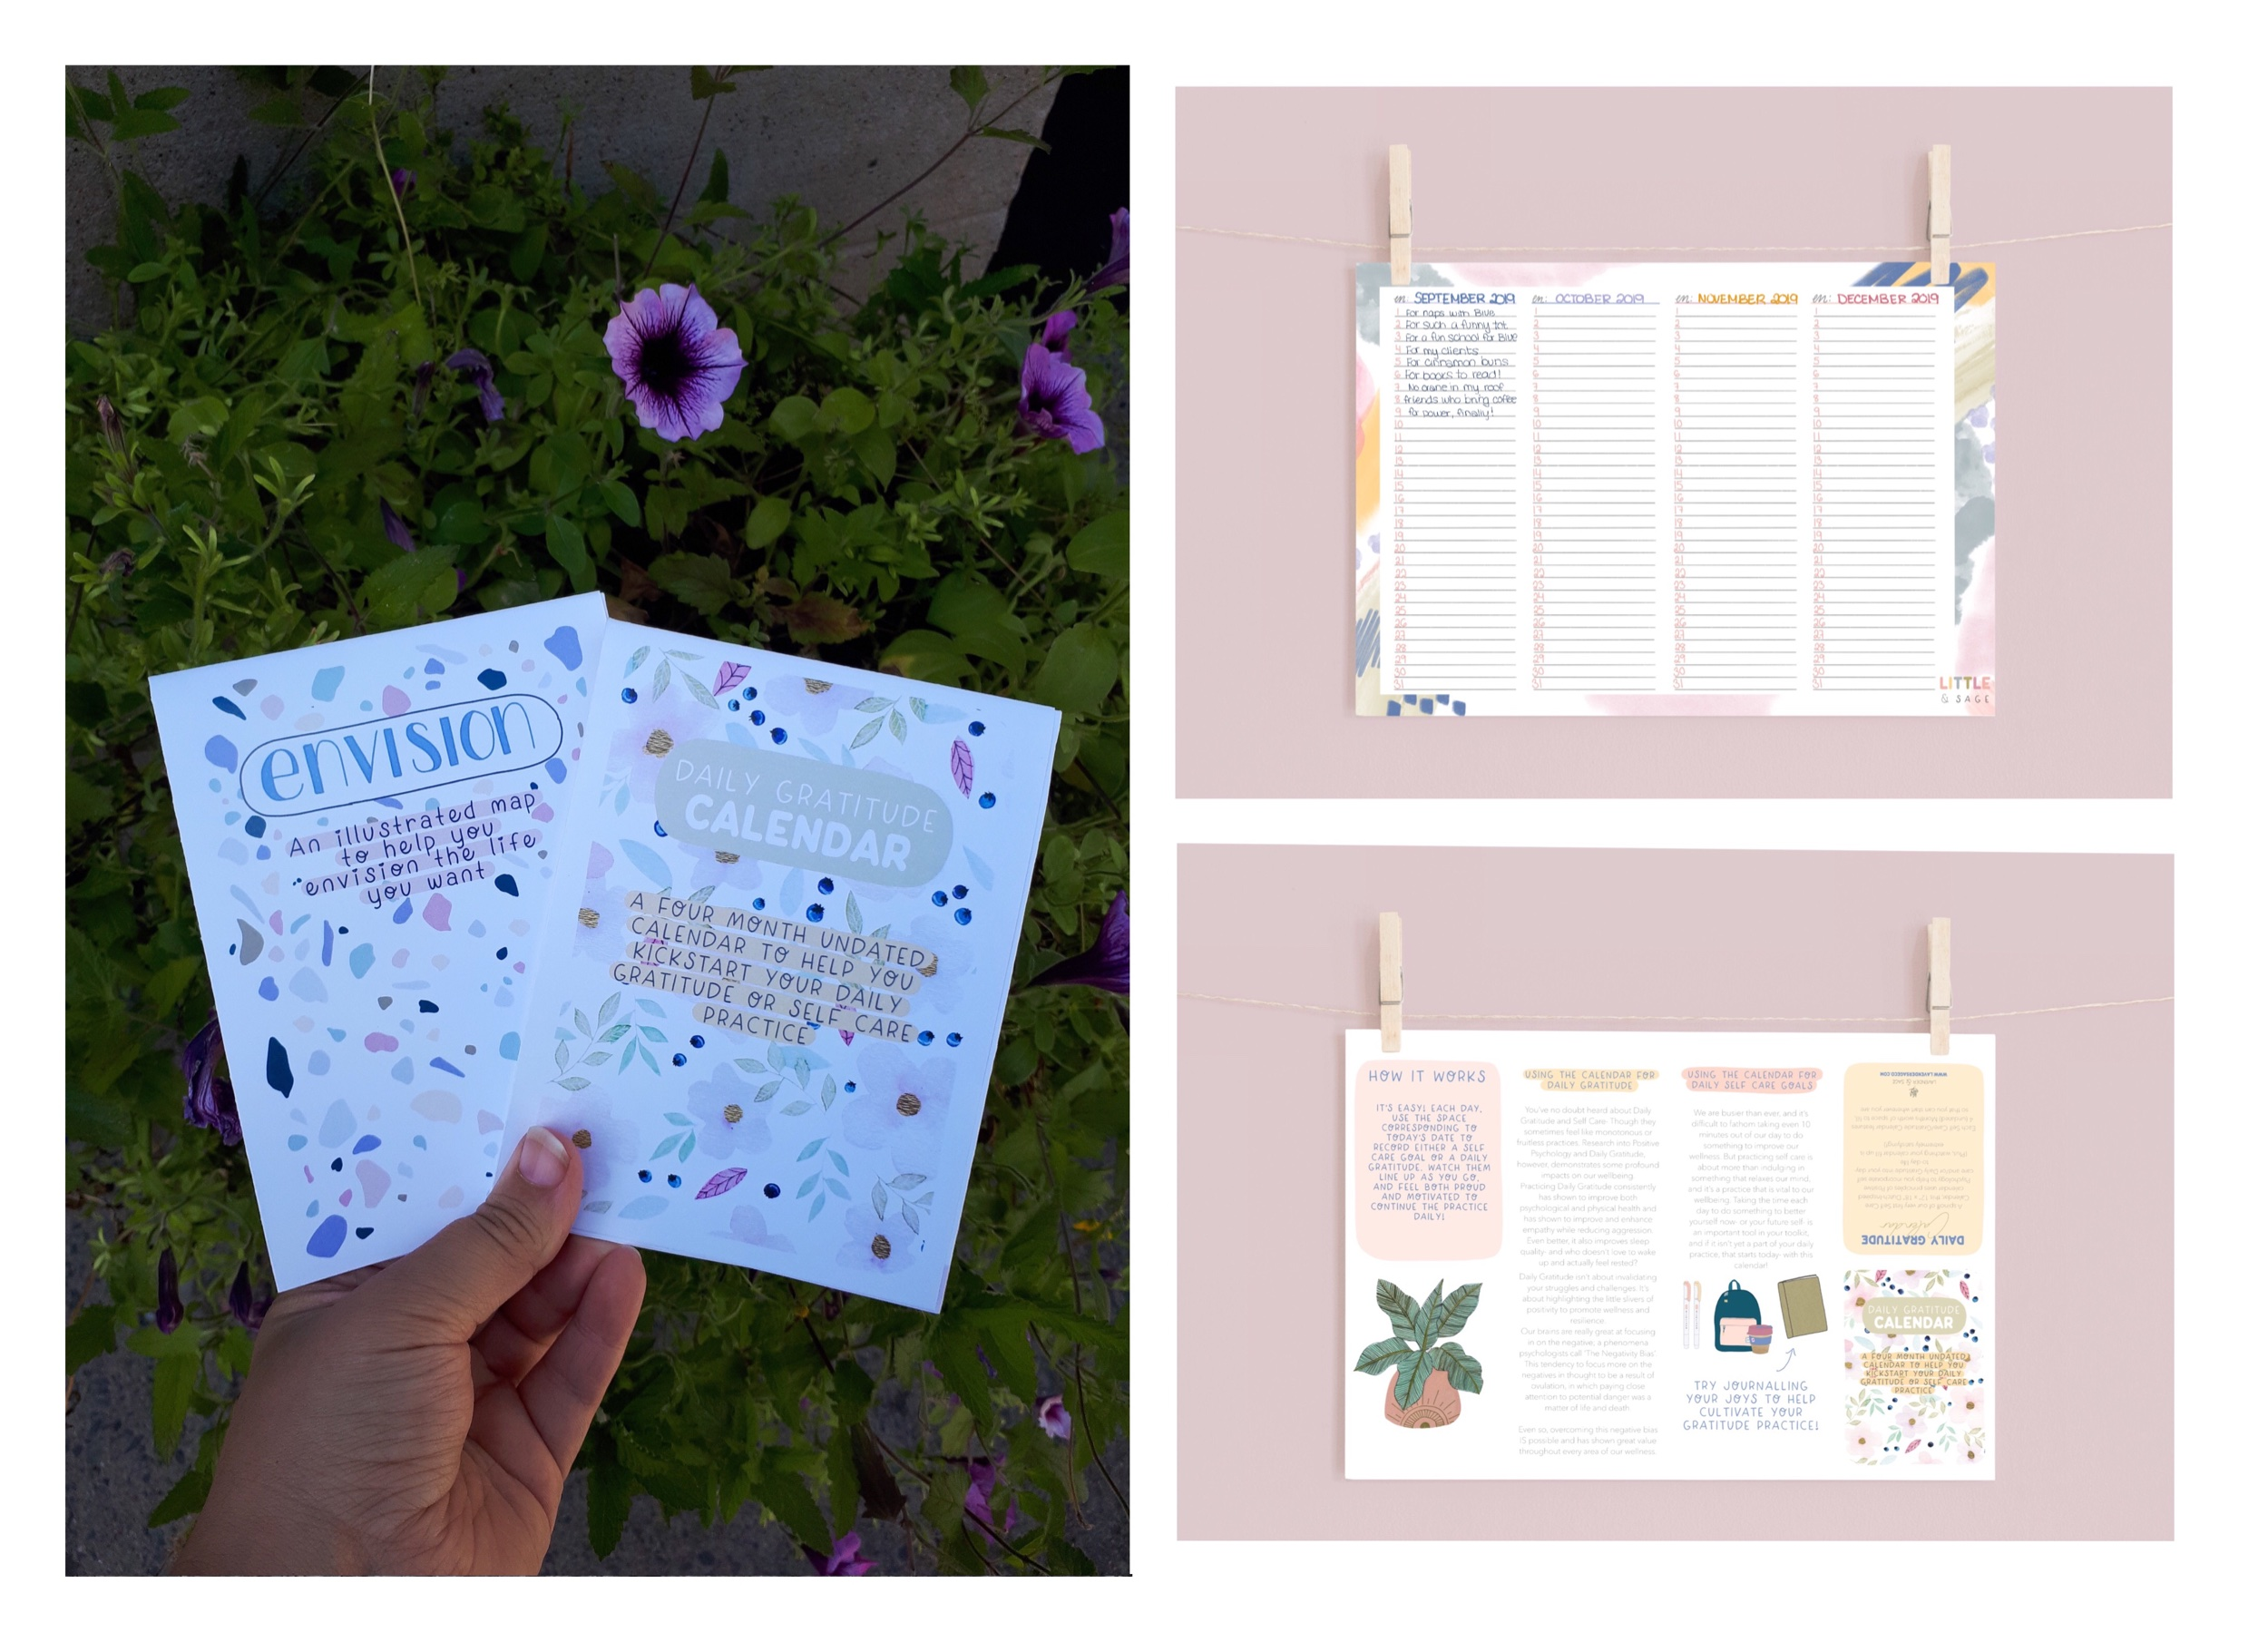 The Daily Gratitude Calendar by Lavender & Sage